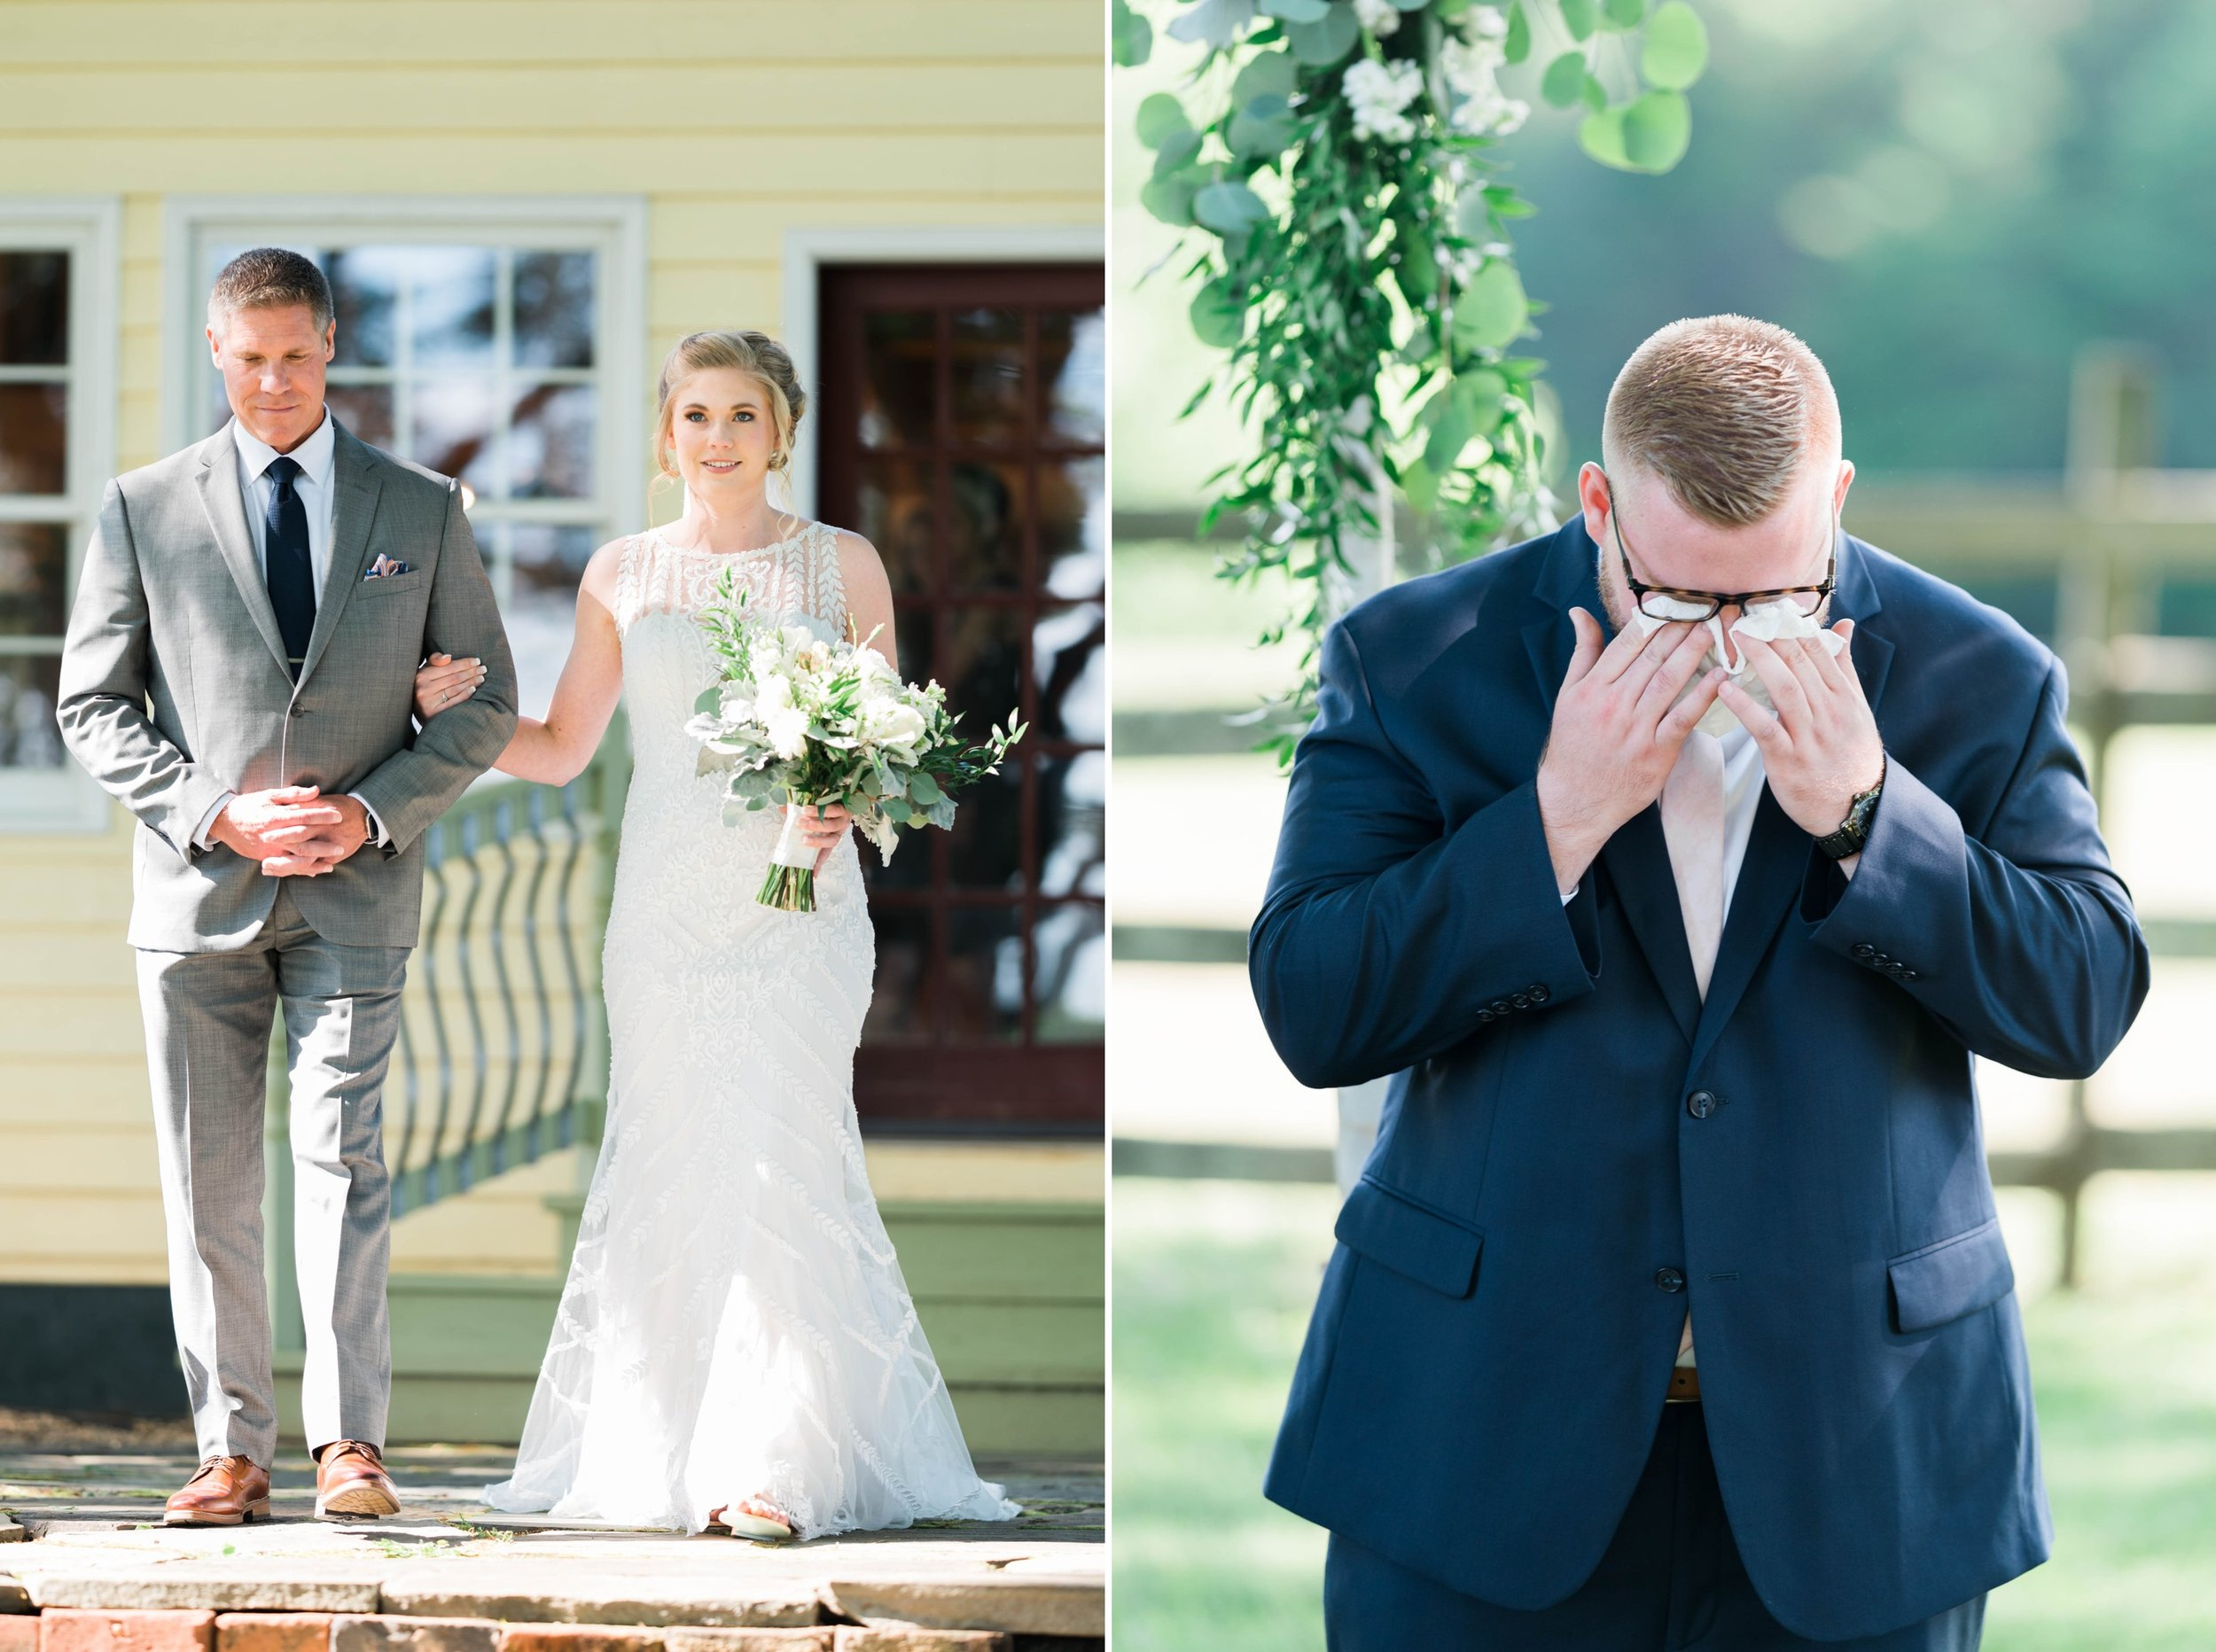 SorellaFarms_VirginiaWeddingPhotographer_BarnWedding_Lynchburgweddingphotographer_DanielleTyler 38.jpg